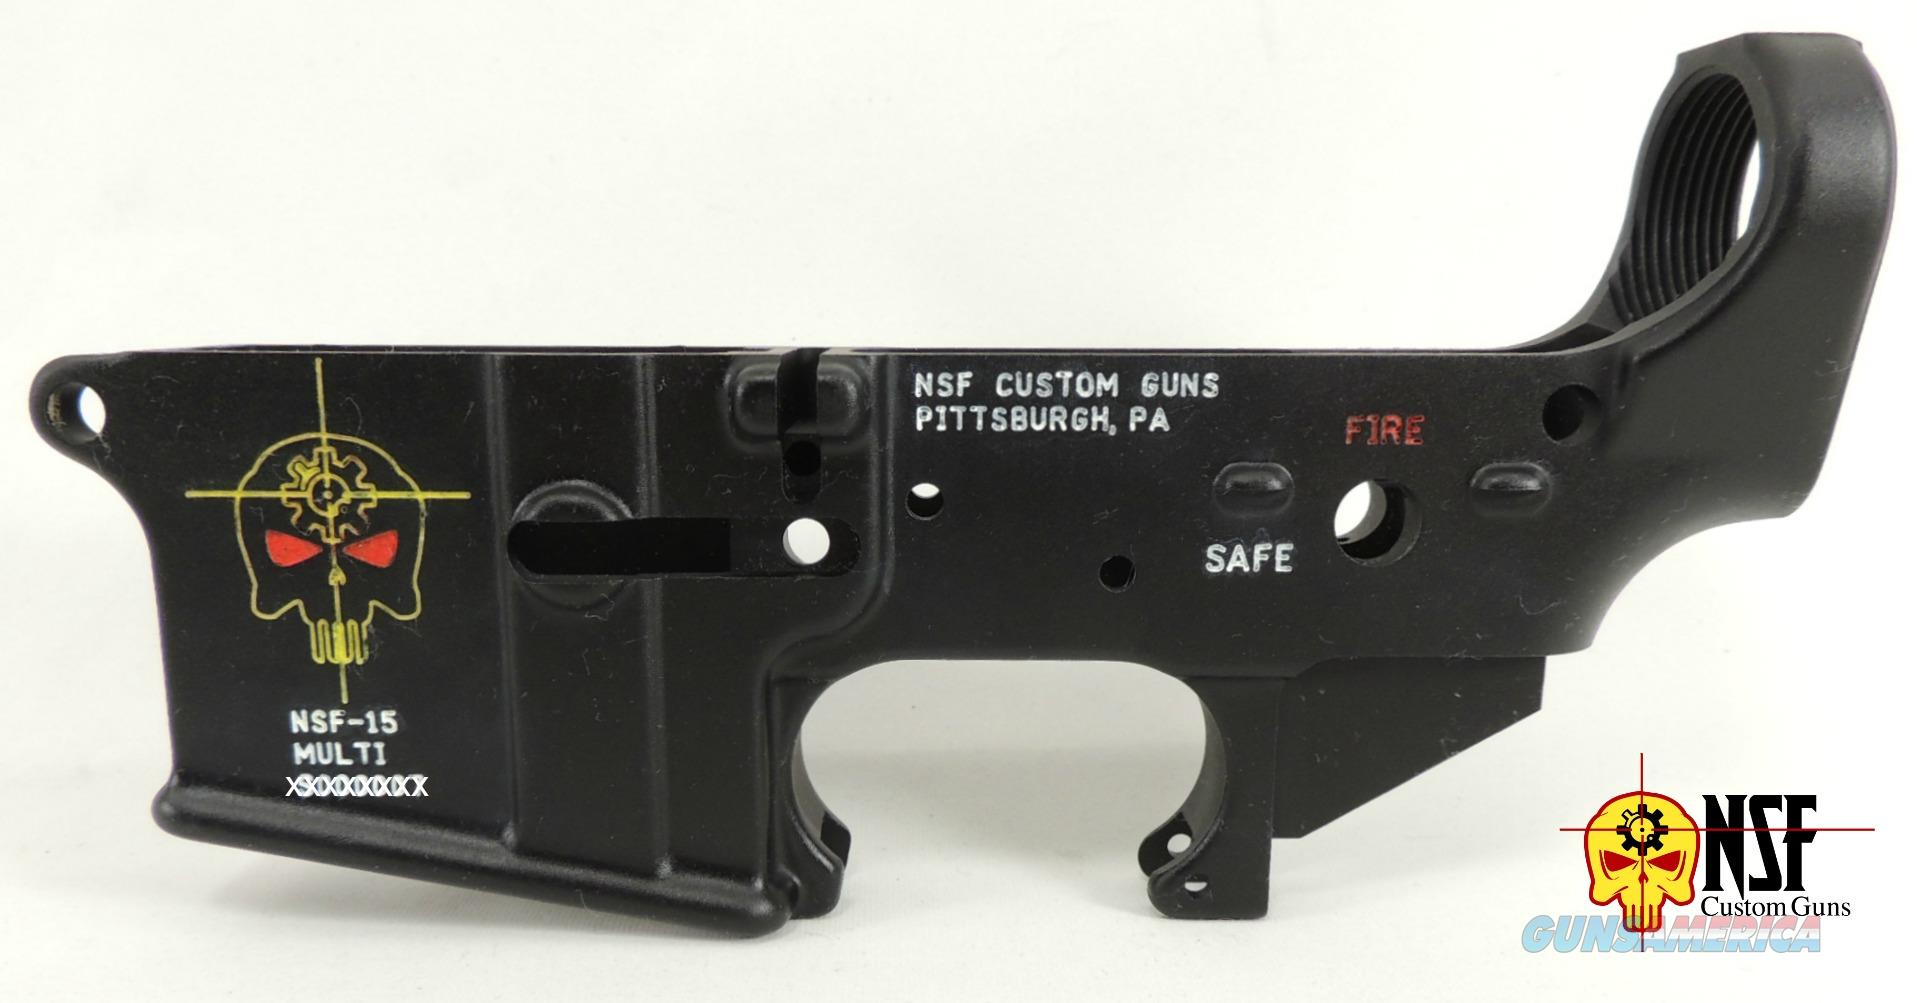 Color Filled NSF Custom Guns AR15 Lower Receiver  Guns > Rifles > AR-15 Rifles - Small Manufacturers > Lower Only